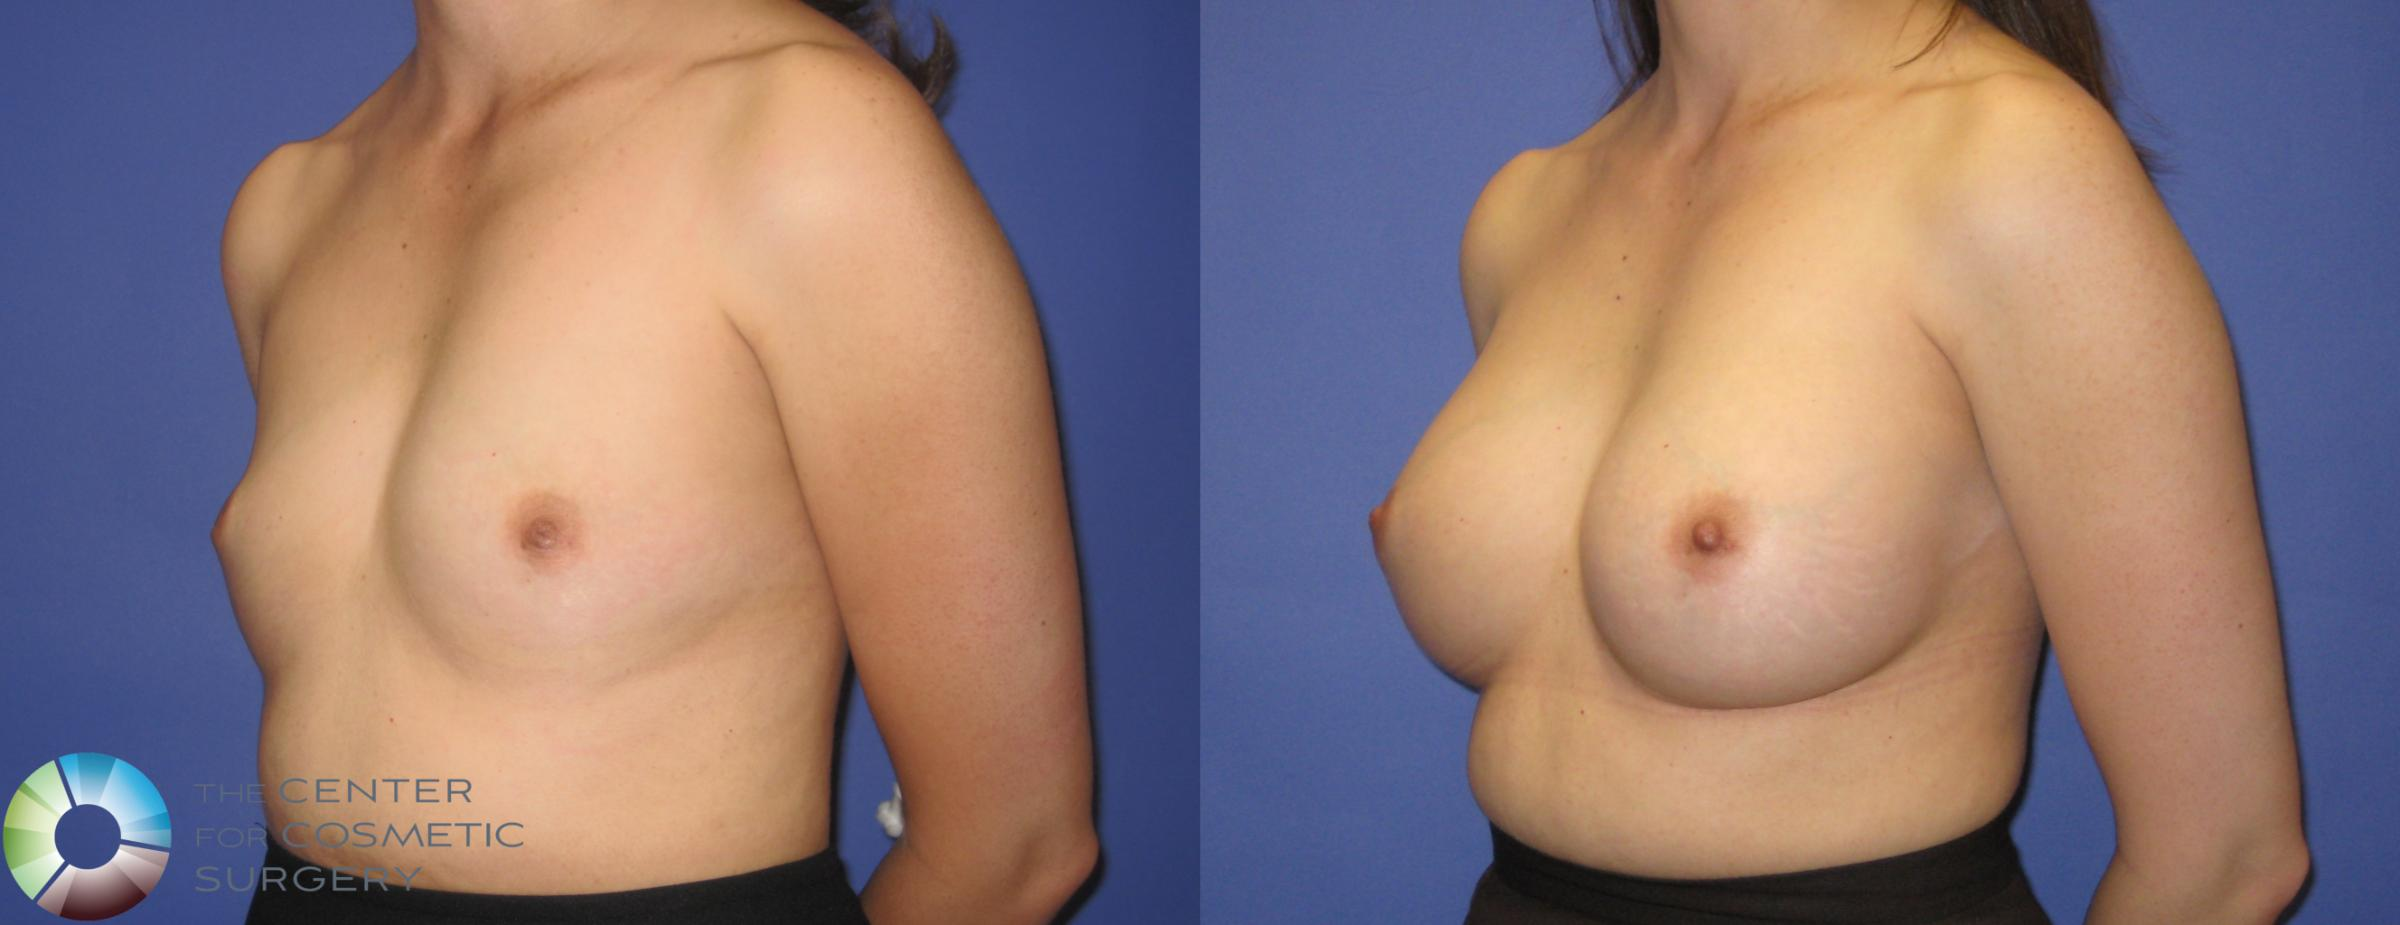 Breast Augmentation Case 290 Before & After View #2 | Golden, CO | The Center for Cosmetic Surgery